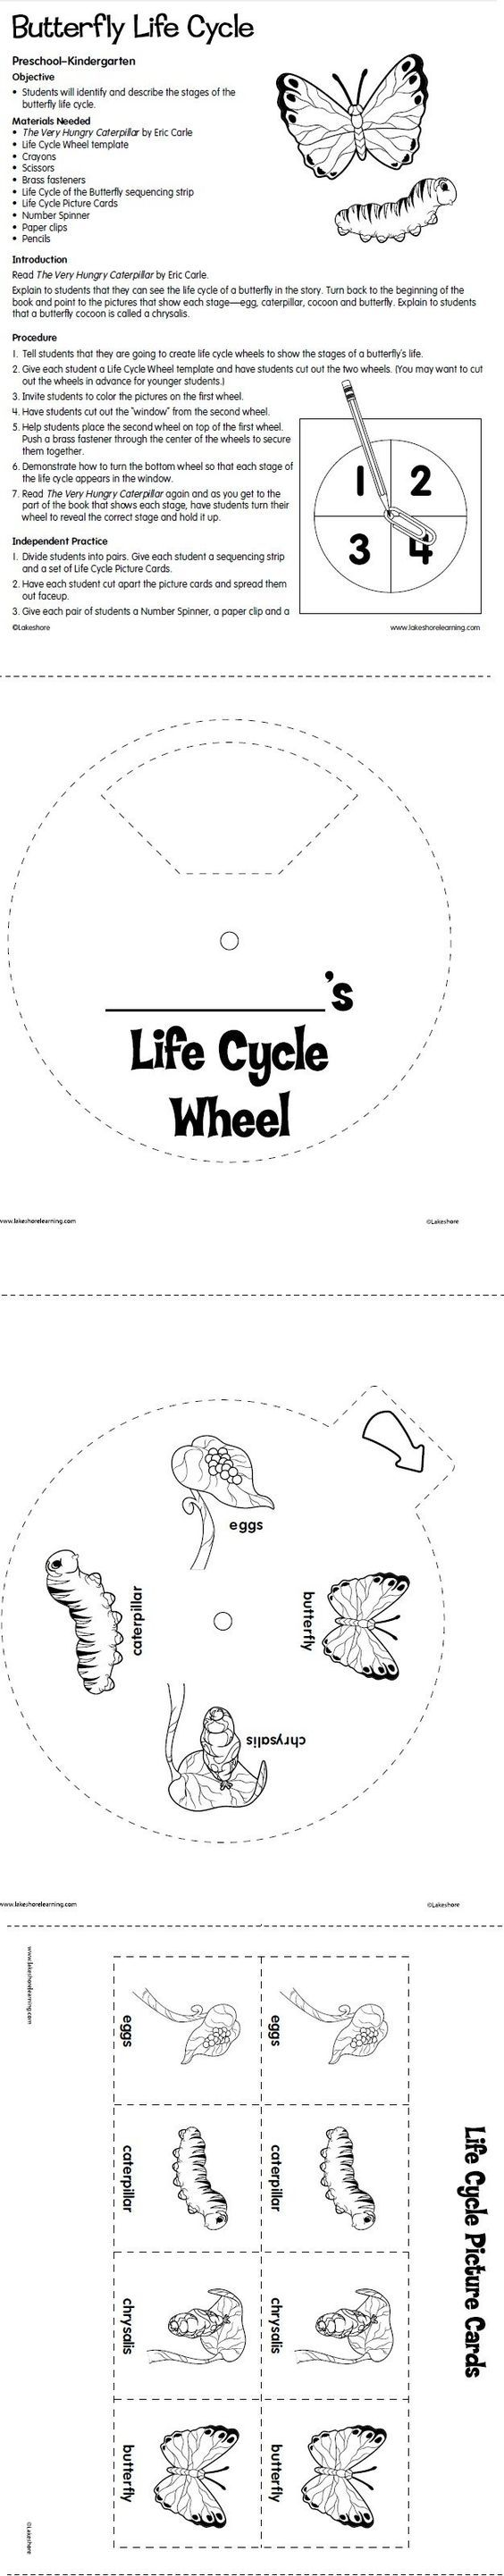 worksheet Silkworm Life Cycle Worksheet 661 best life cycle images on pinterest cycles preschool and free butterfly lesson homeschool giveaways